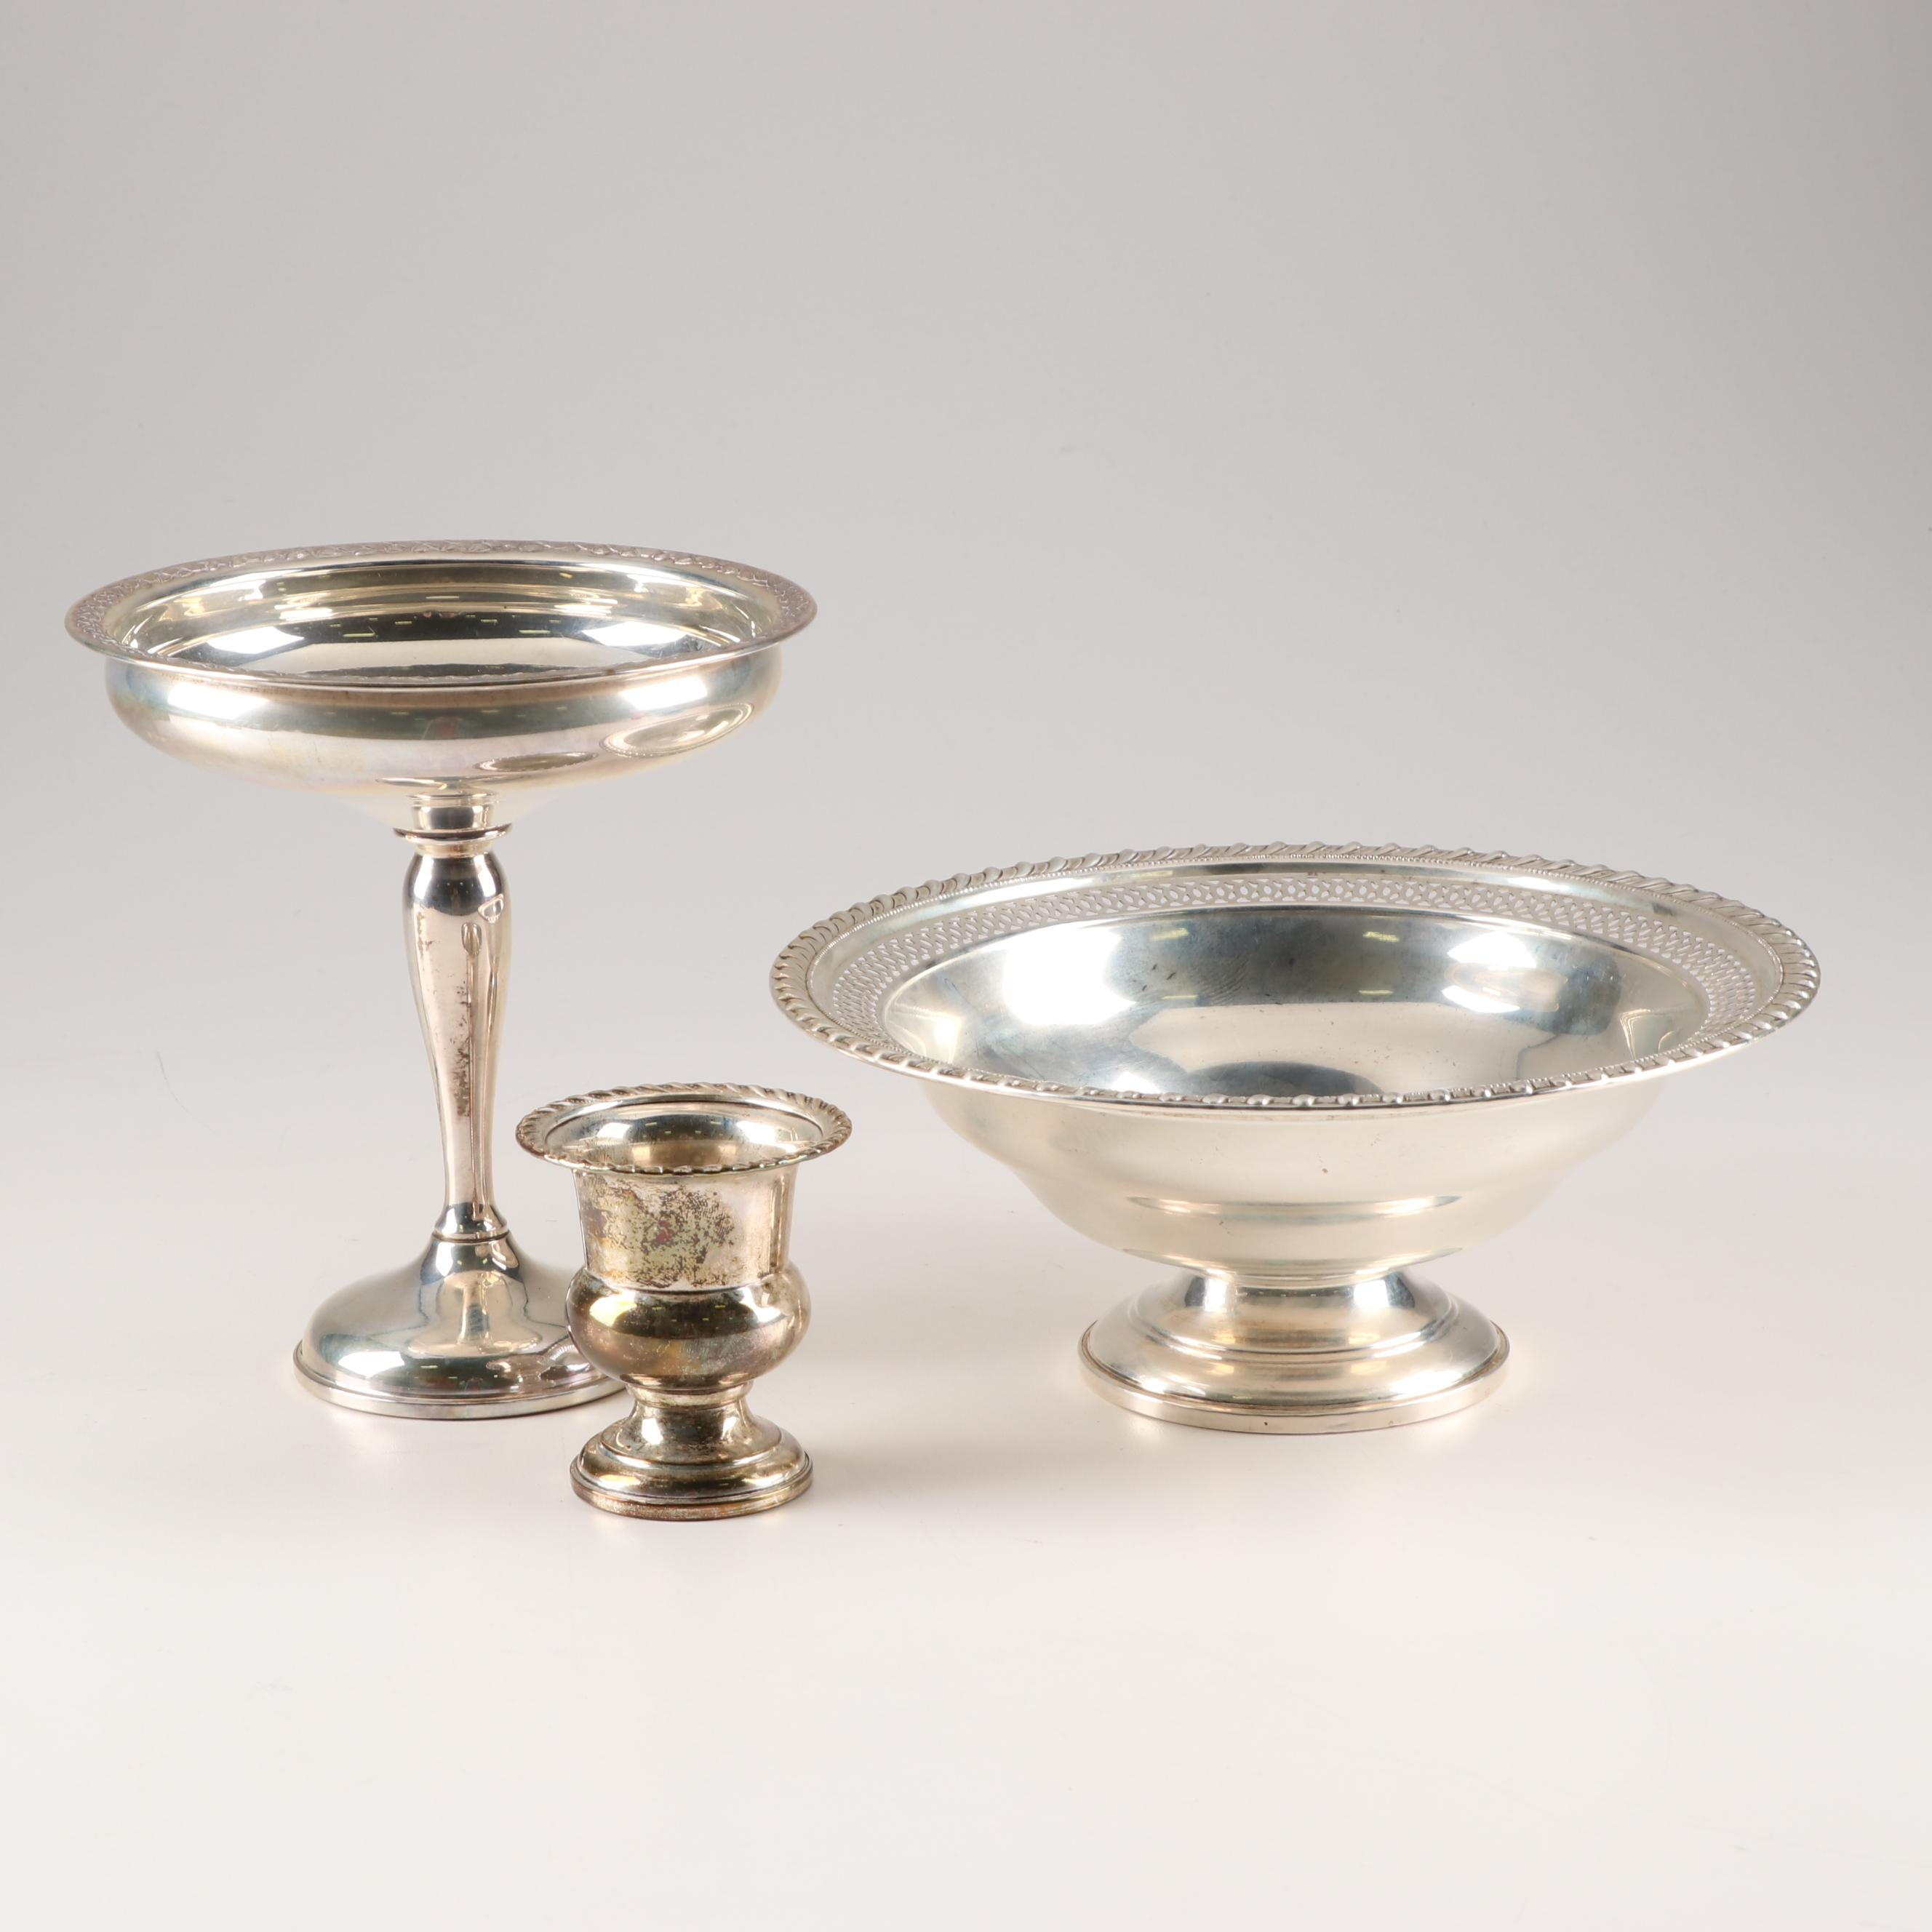 Weighted Sterling Silver Serving Pieces including National Silver Co. Compote